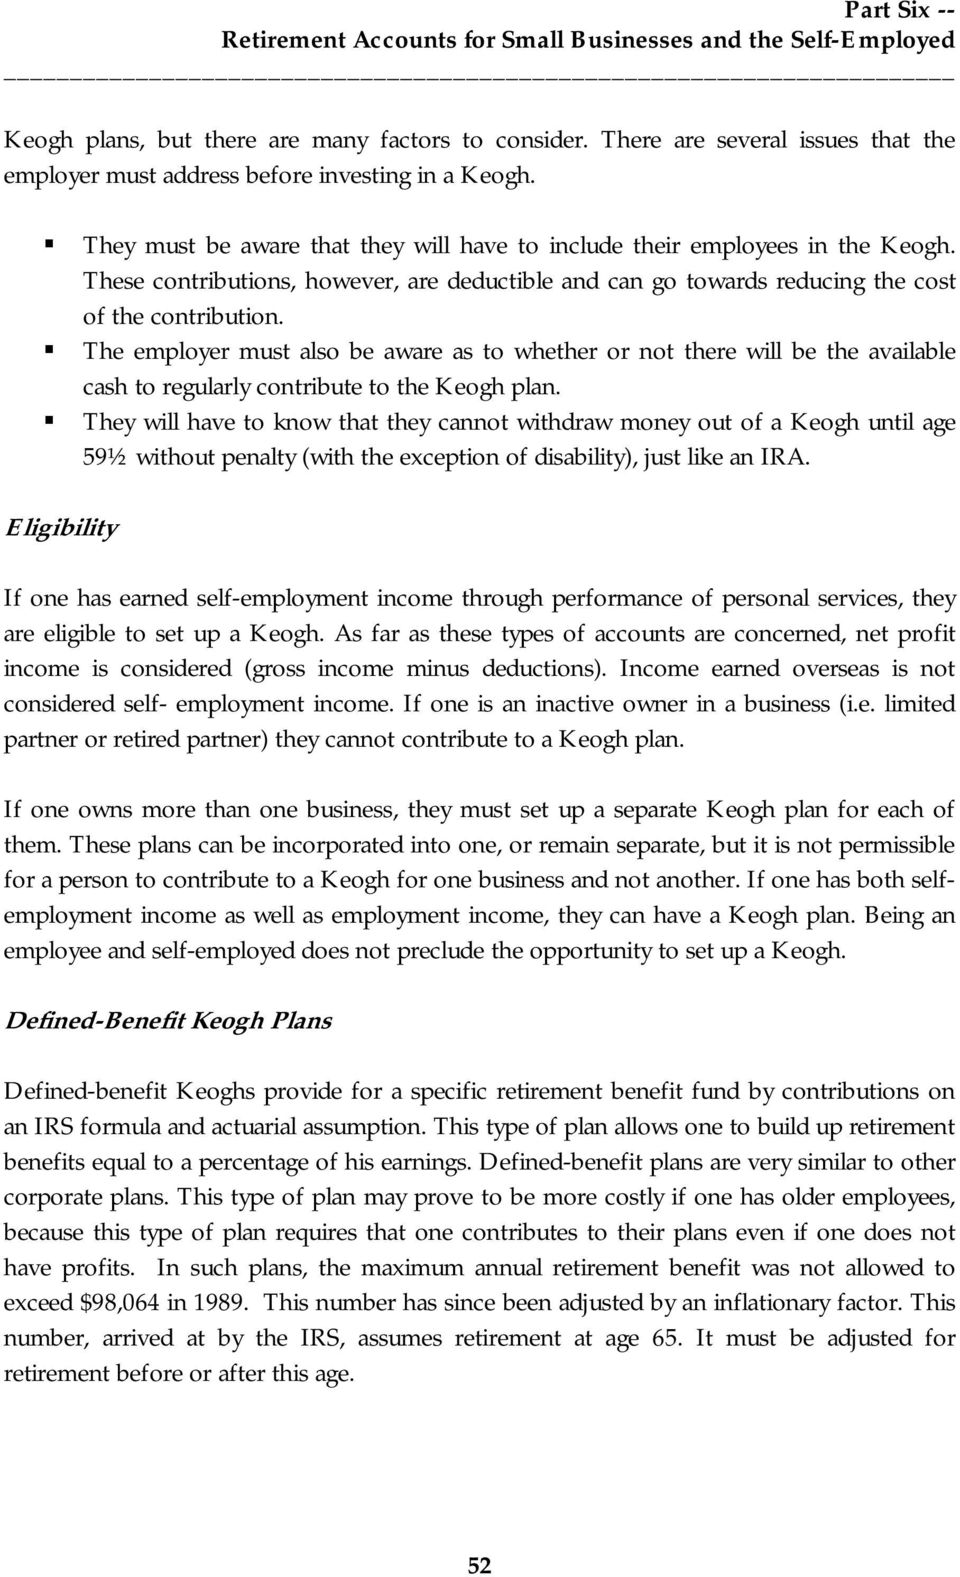 ! The employer must also be aware as to whether or not there will be the available cash to regularly contribute to the Keogh plan.